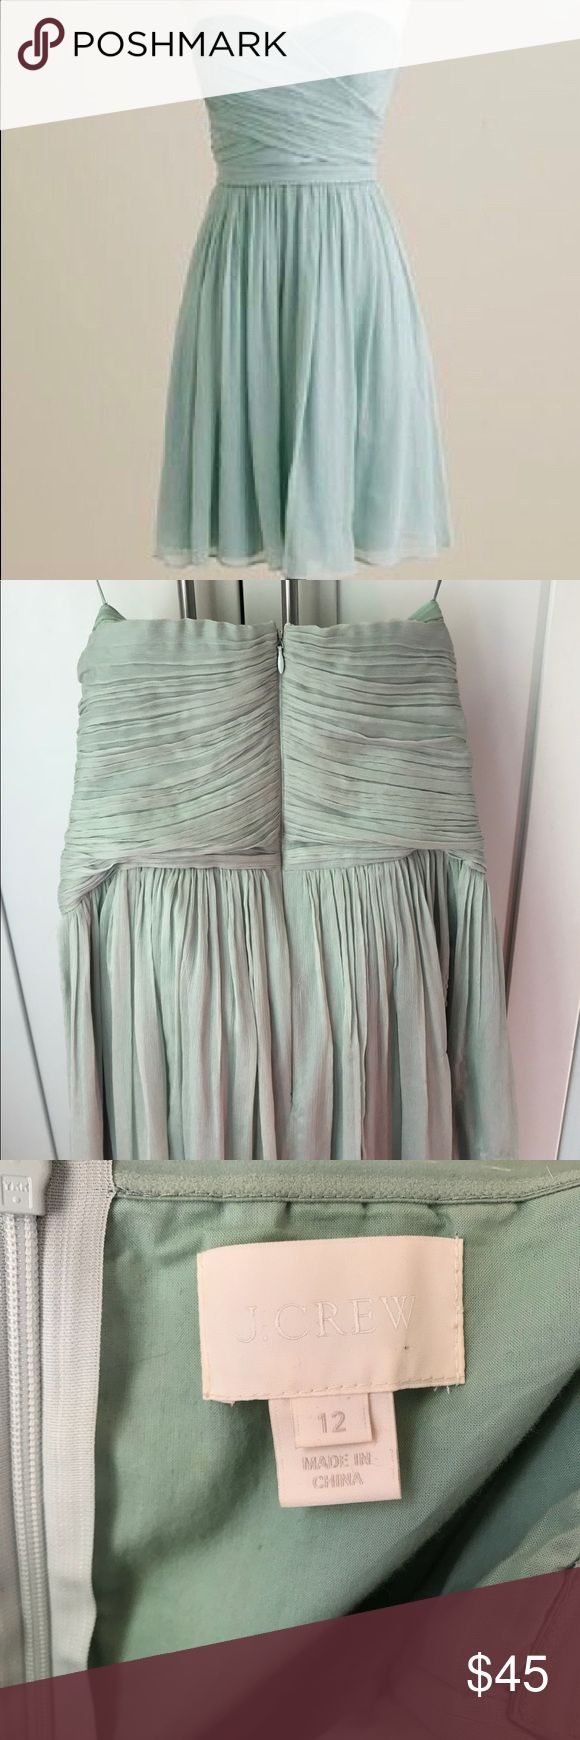 J Crew mint dusty shale strapless bridesmaid dress J crew size 12 mint bridesmaid dress. Needs to be dry cleaned, small spill on front (last picture). Worn to two weddings and danced in, so not perfect condition. But easily cleaned. Very pretty and gorgeous color. j crew Dresses Strapless